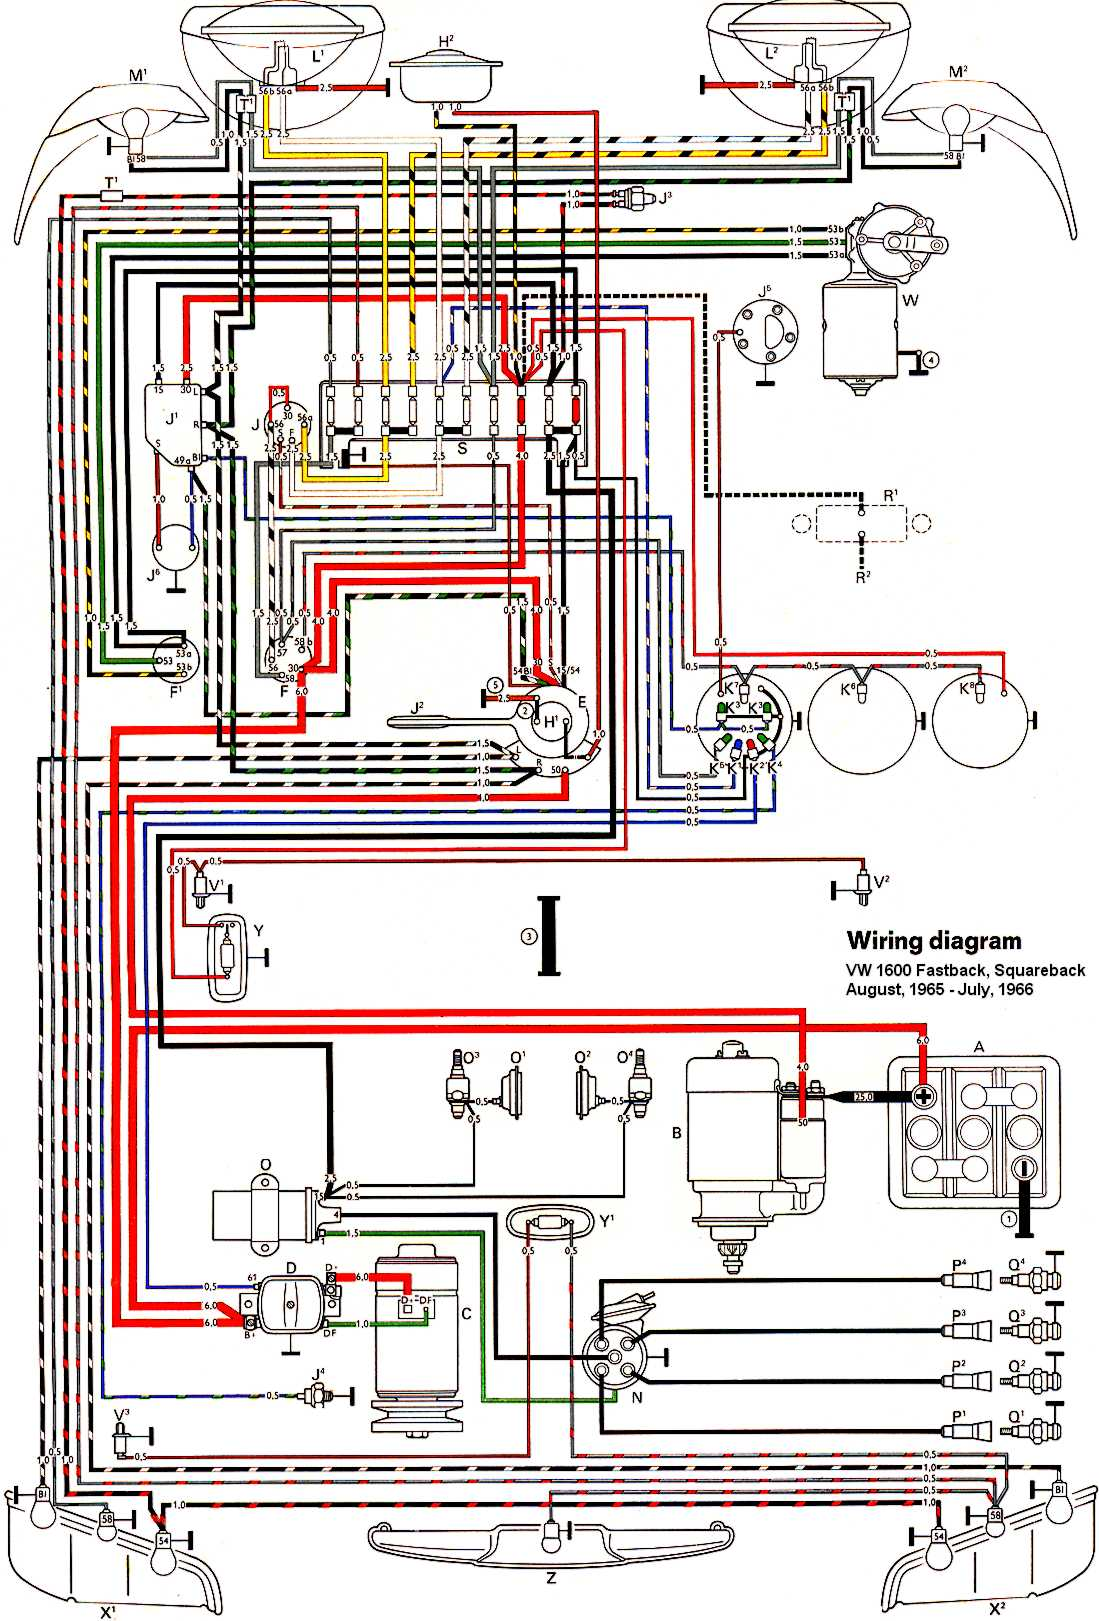 vw wiring diagram alternator mallory ignition chevy 73 beetle get free image about